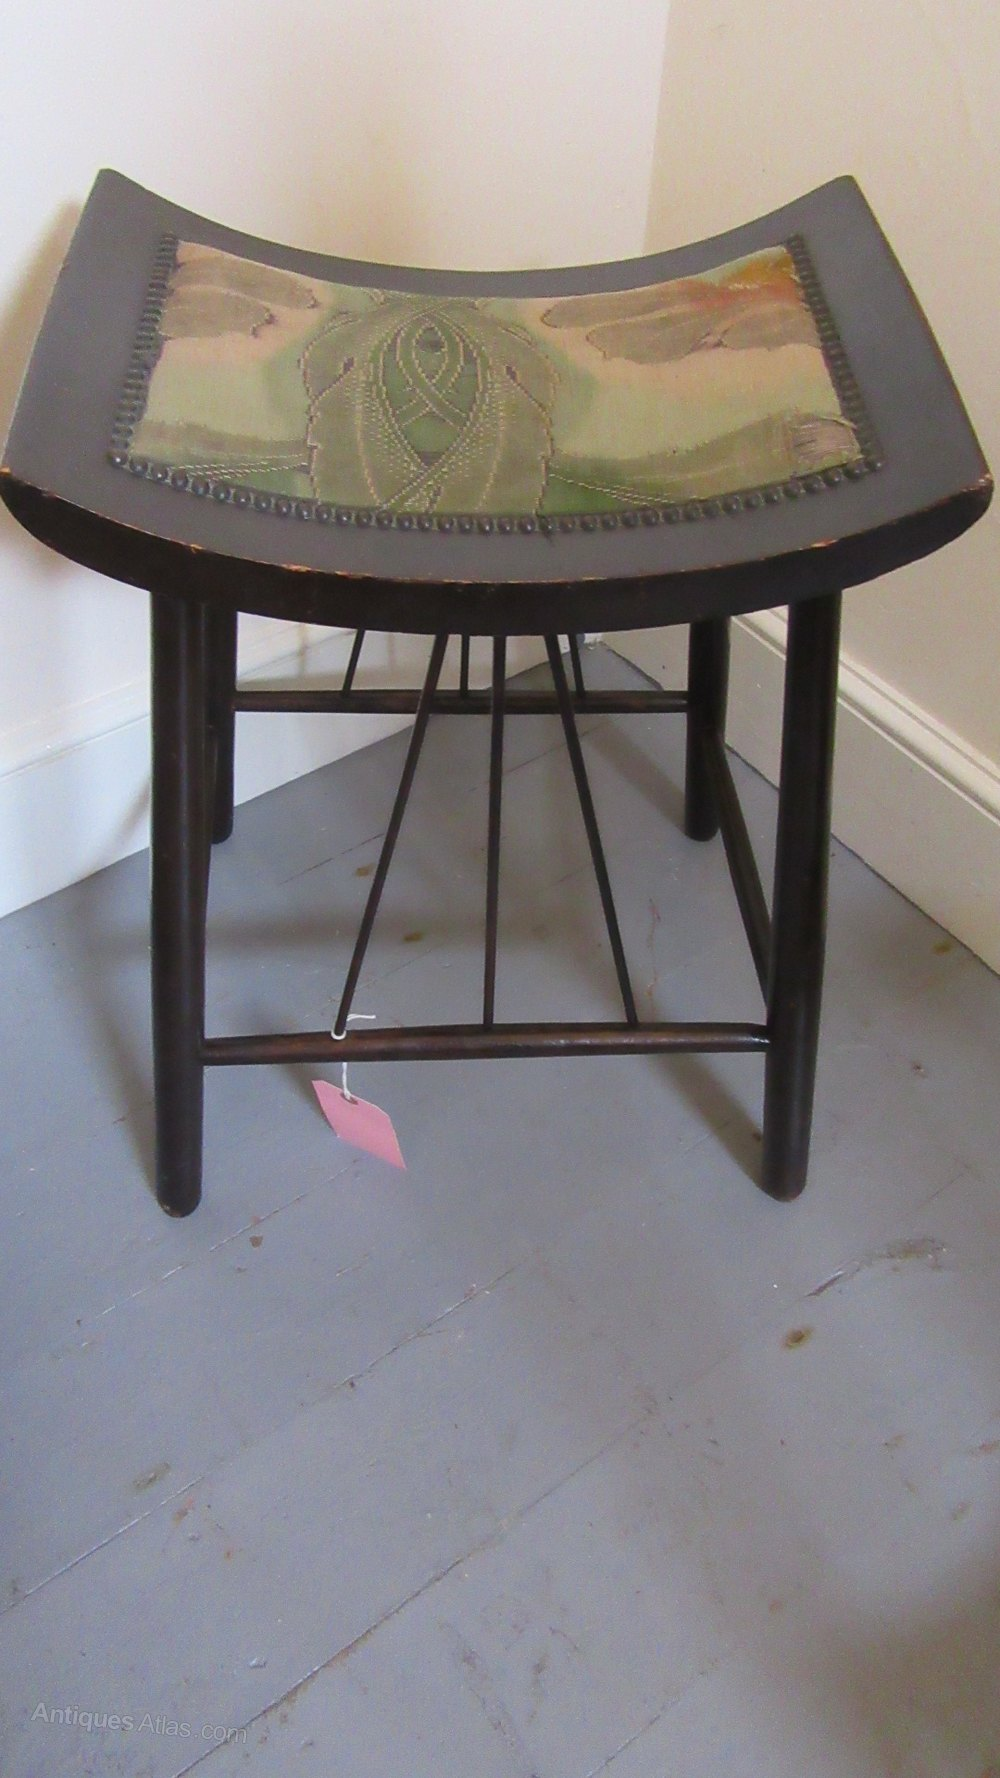 Antique Liberty Thiebes Stool - Antiques Atlas